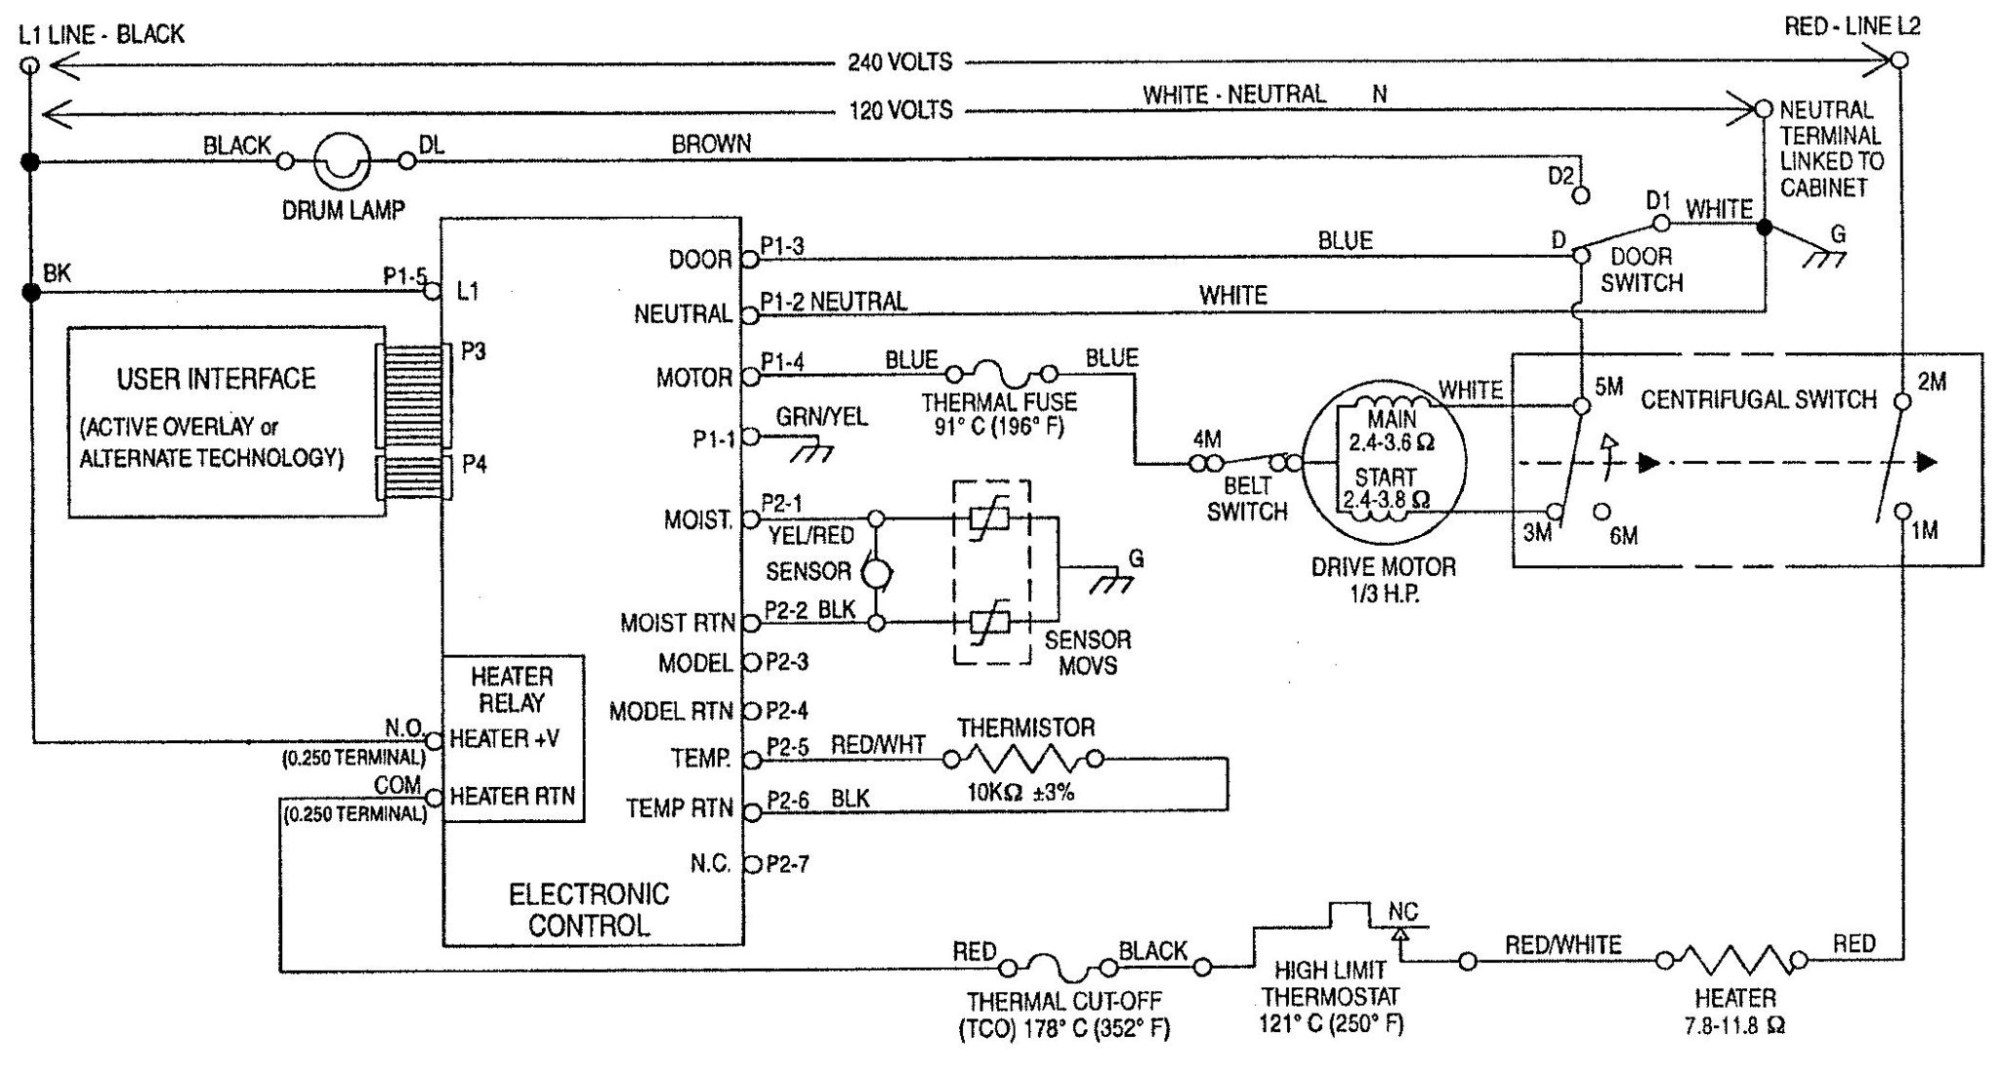 hight resolution of whirlpool dryer schematic wiring diagram whirlpool wiring diagram inspirational best schematic symbols for switches electrical